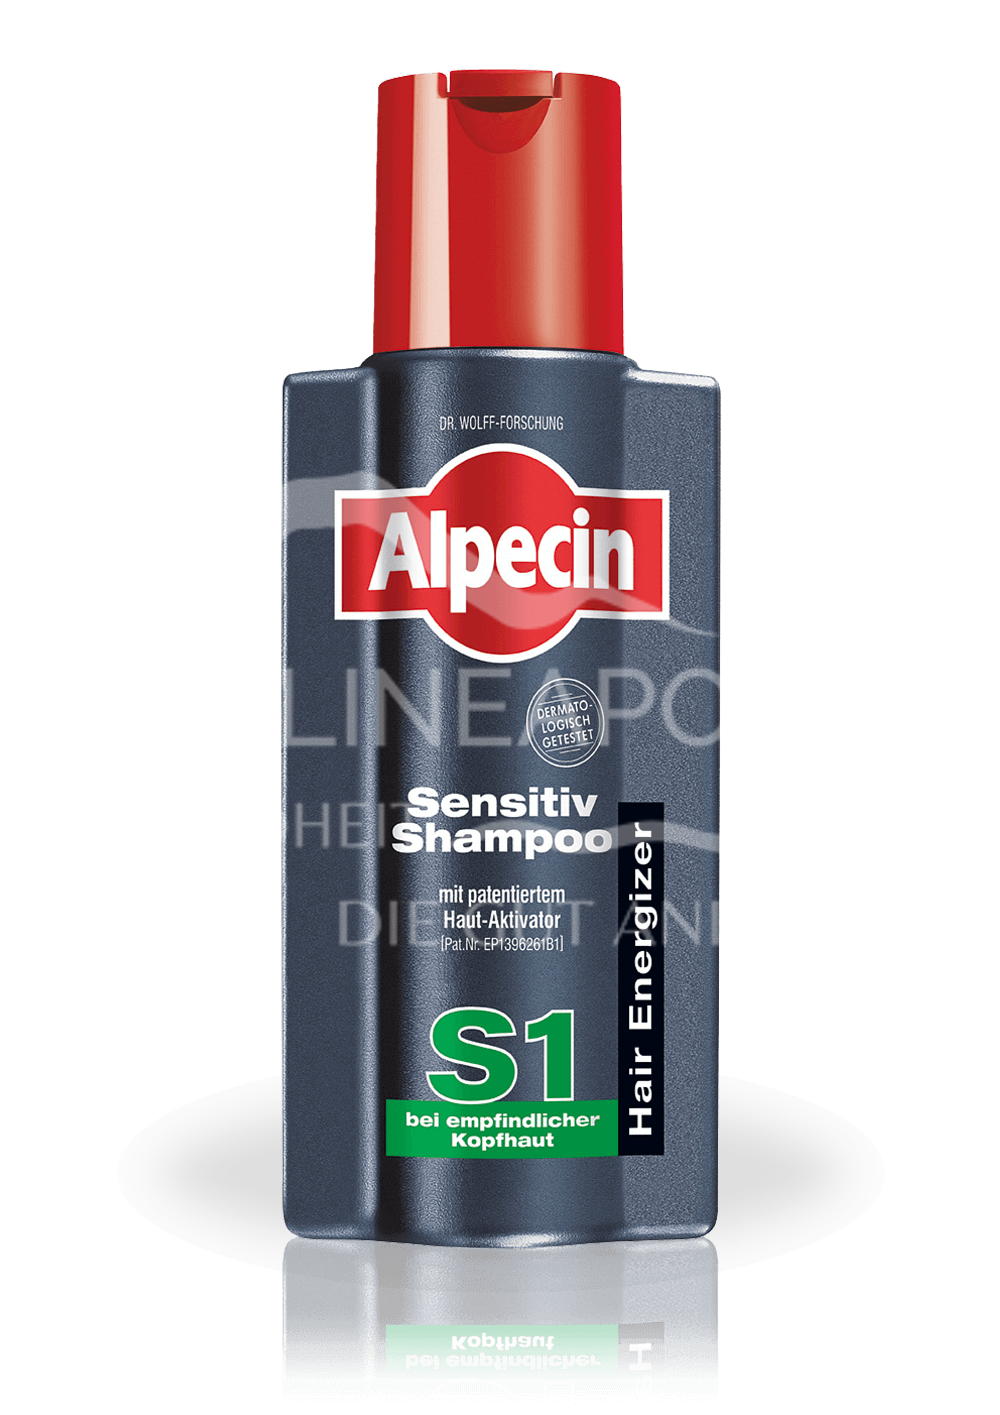 Alpecin Sensitiv Shampoo S1 250ml